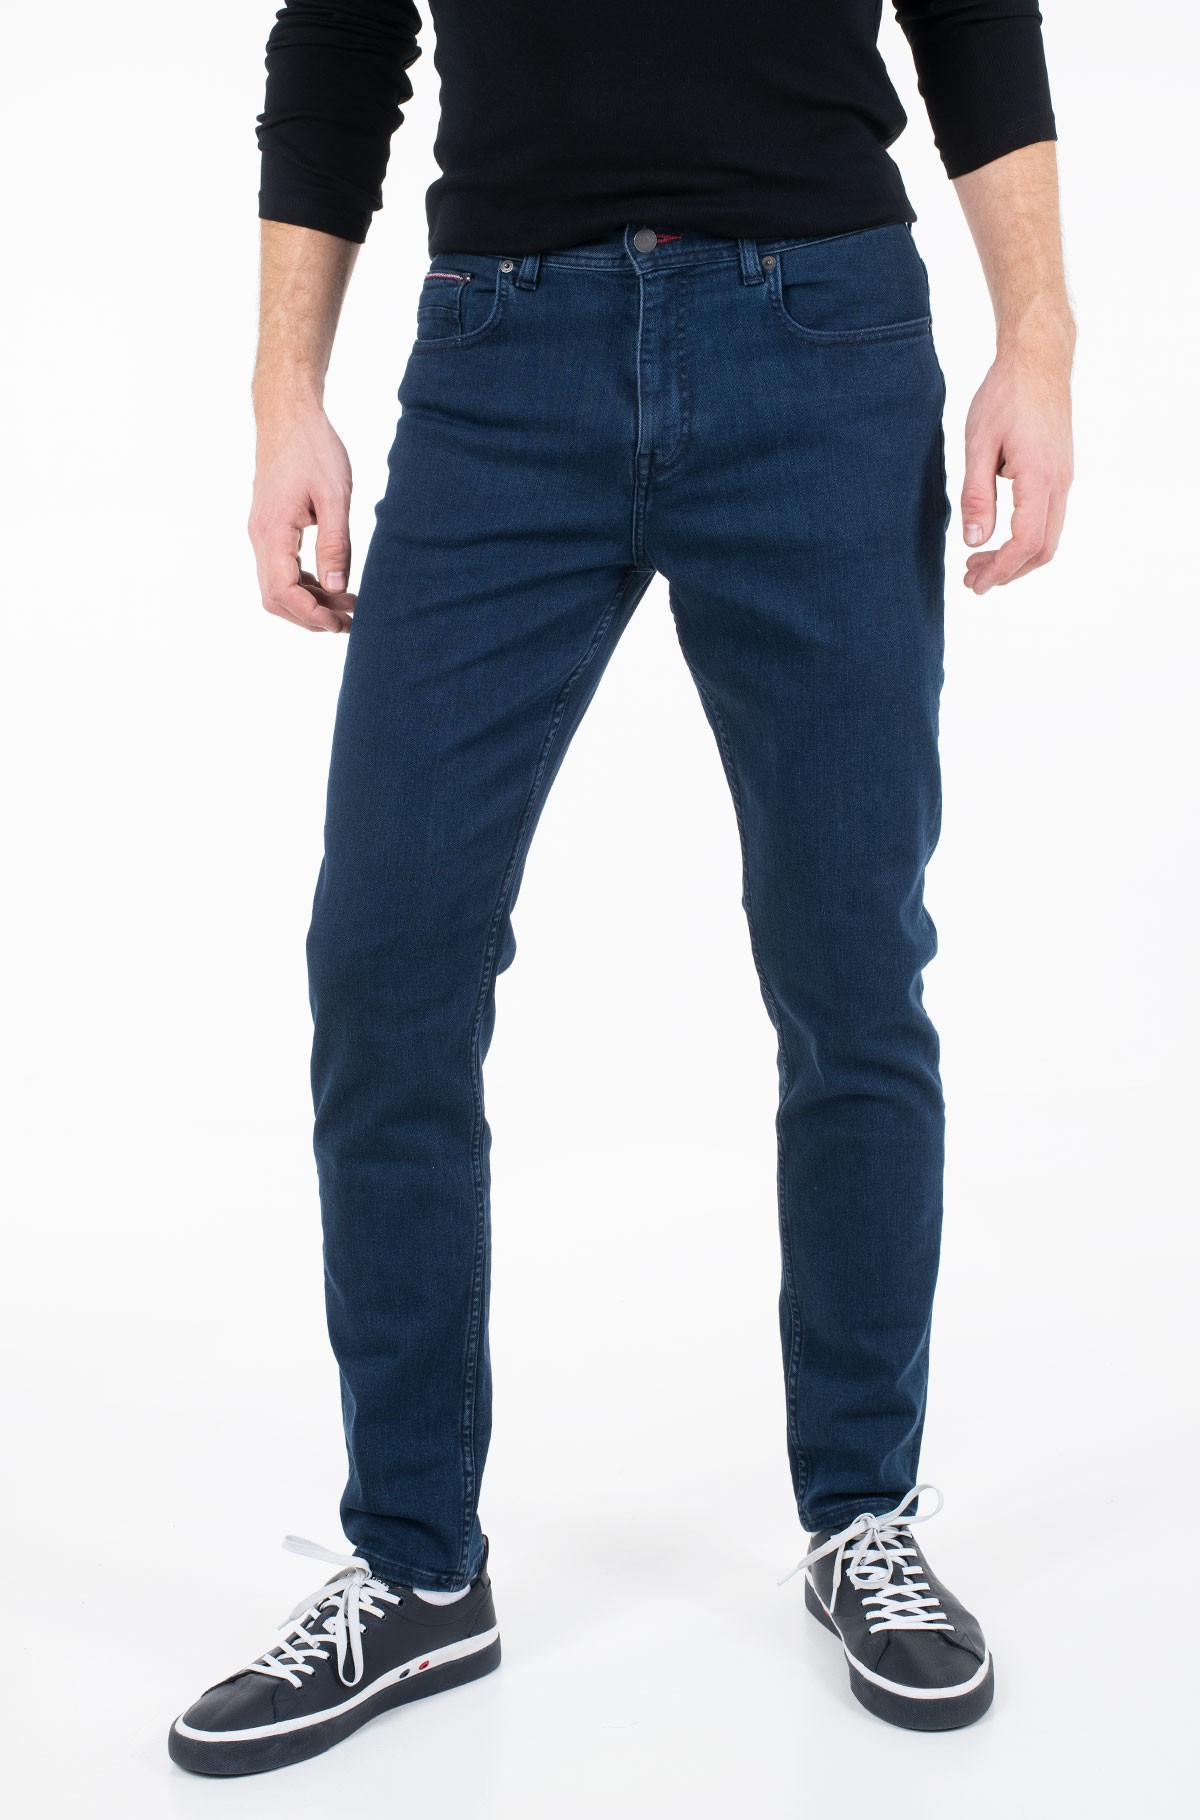 Teksapüksid TAPERED PSTR LAIRD BLUE-full-1